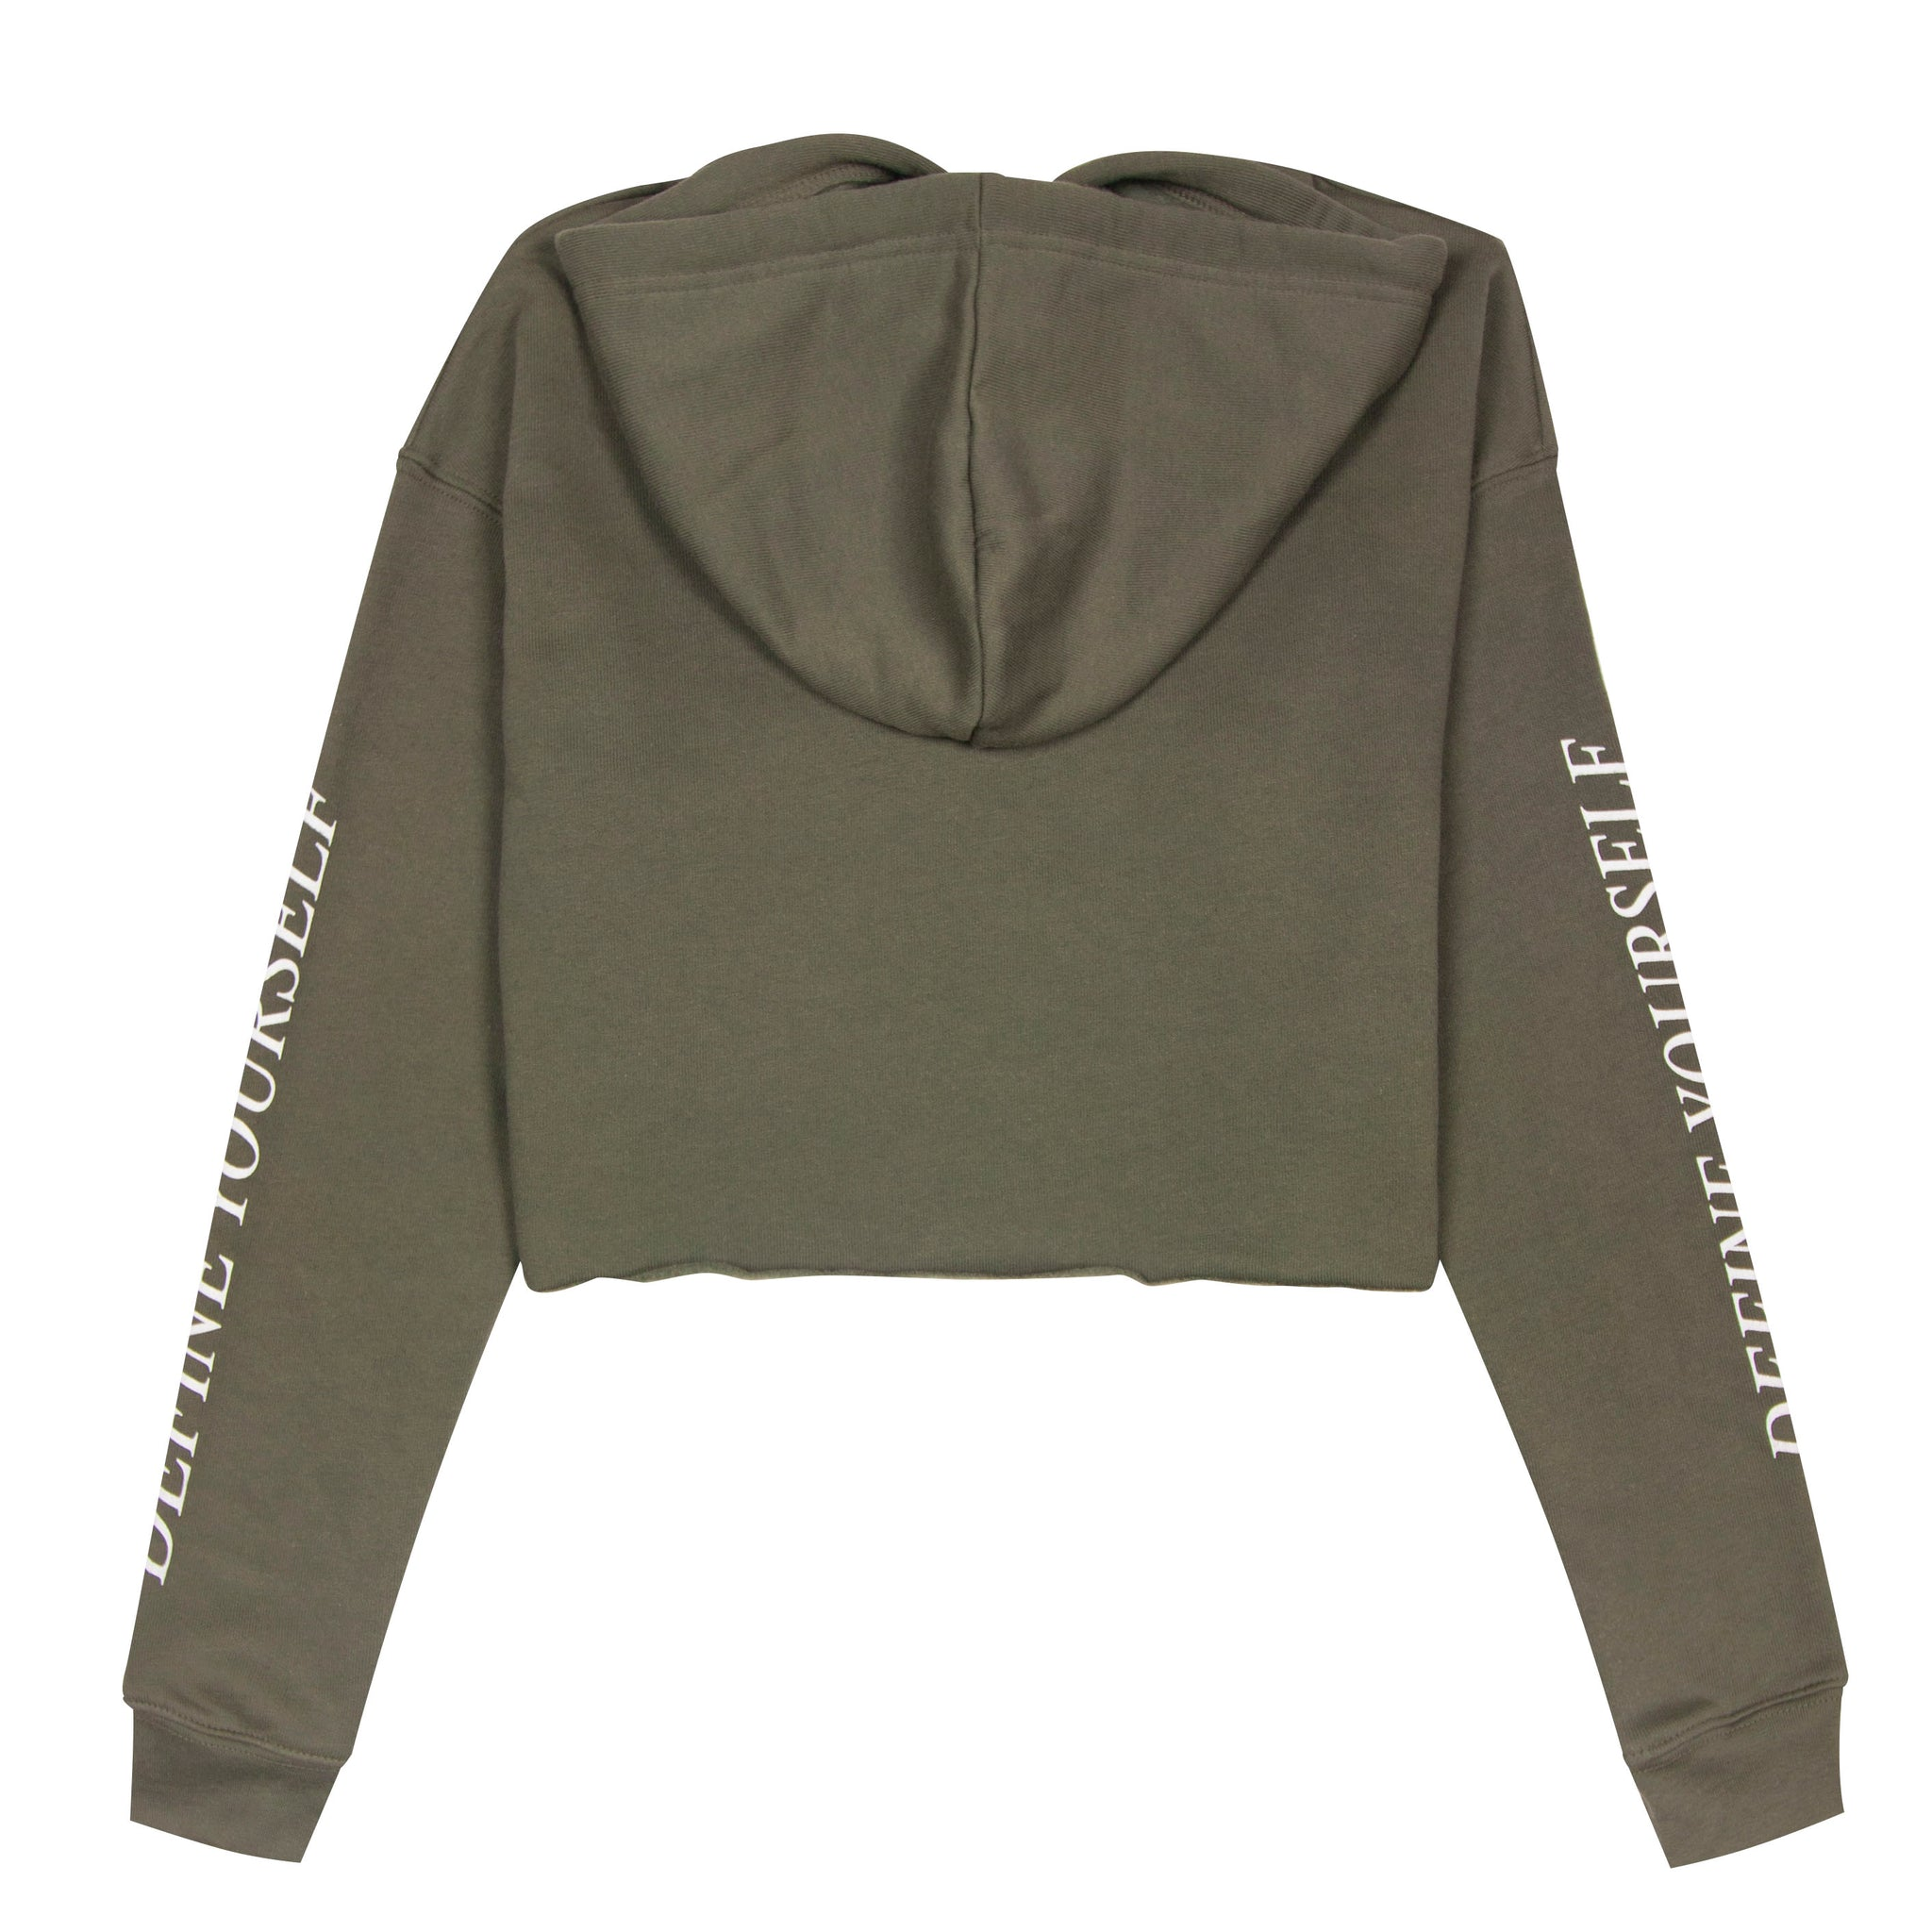 Outre Websters Women's olive crop top hoodie